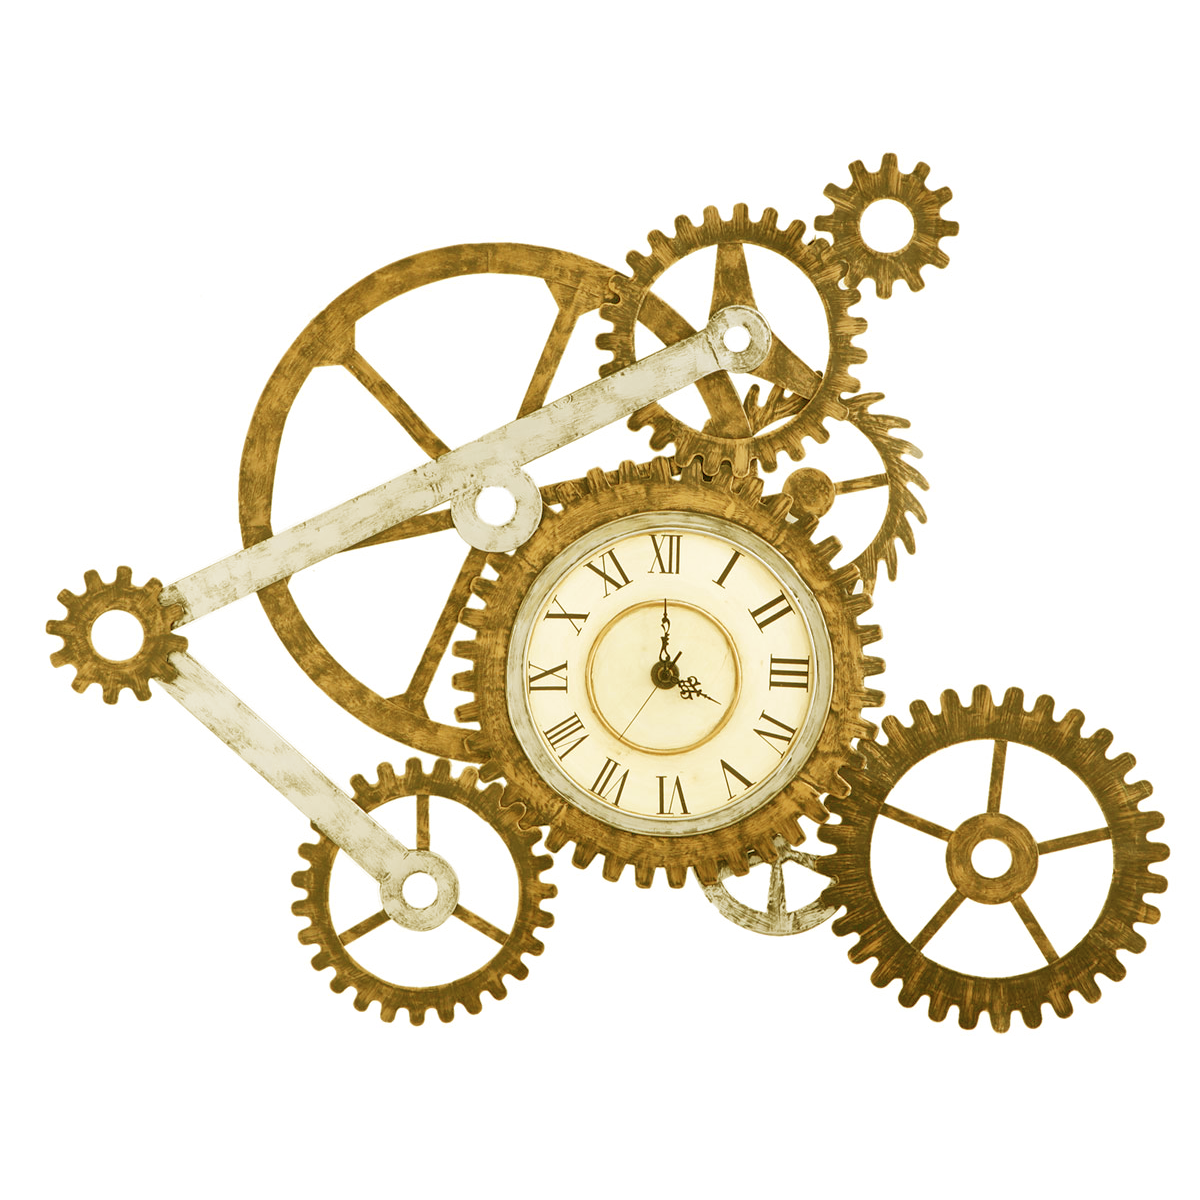 MECHANICAL CLOCK SHOWPIECE